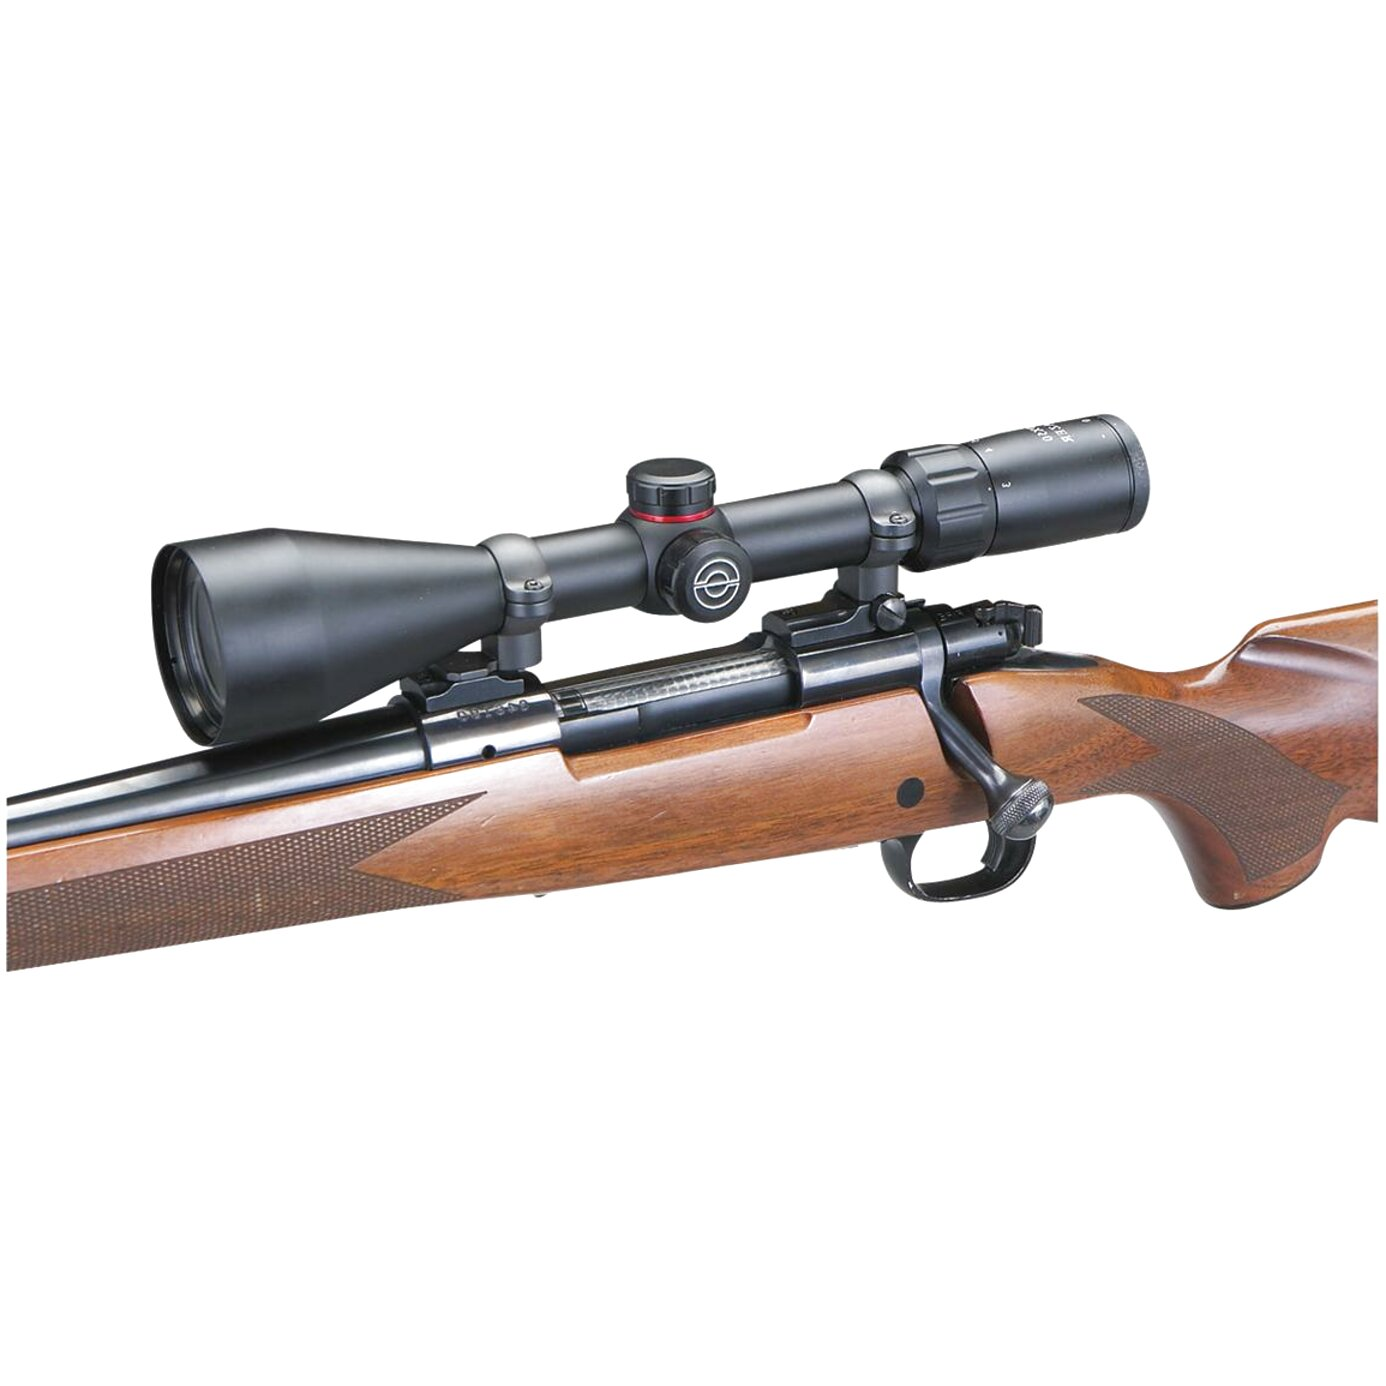 3x9x50 rifle scopes for sale